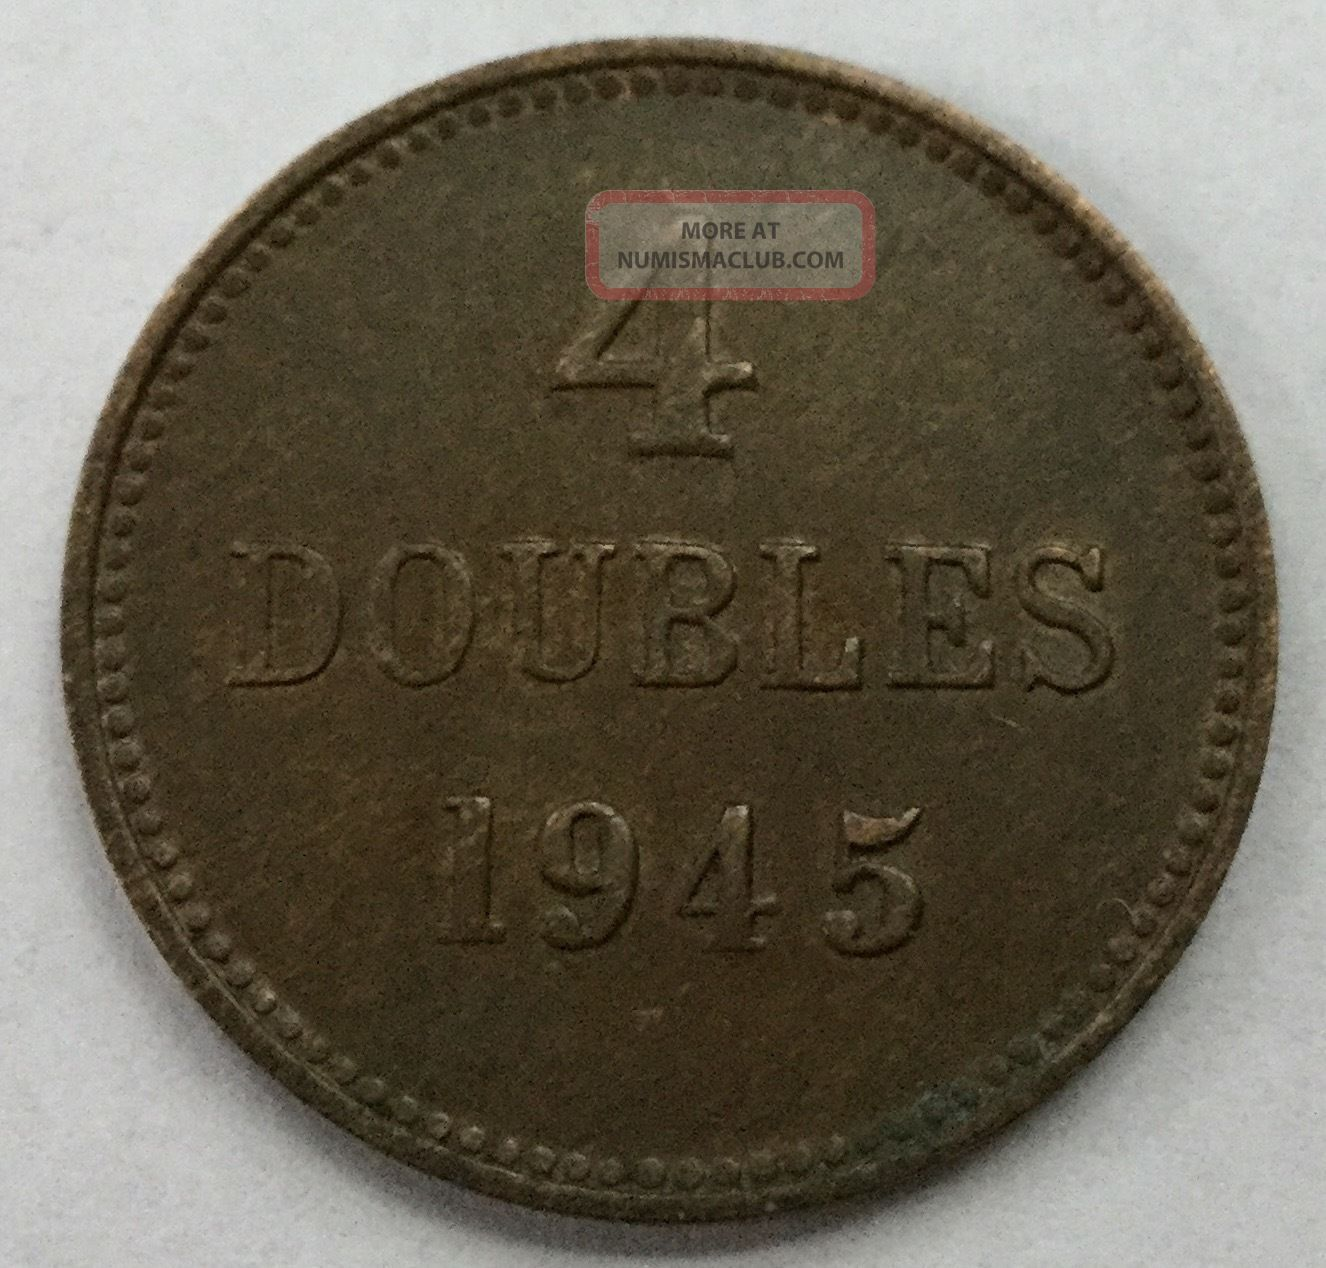 1945 Guernsey 4 Doubles Au Low Mintage Other European Coins photo